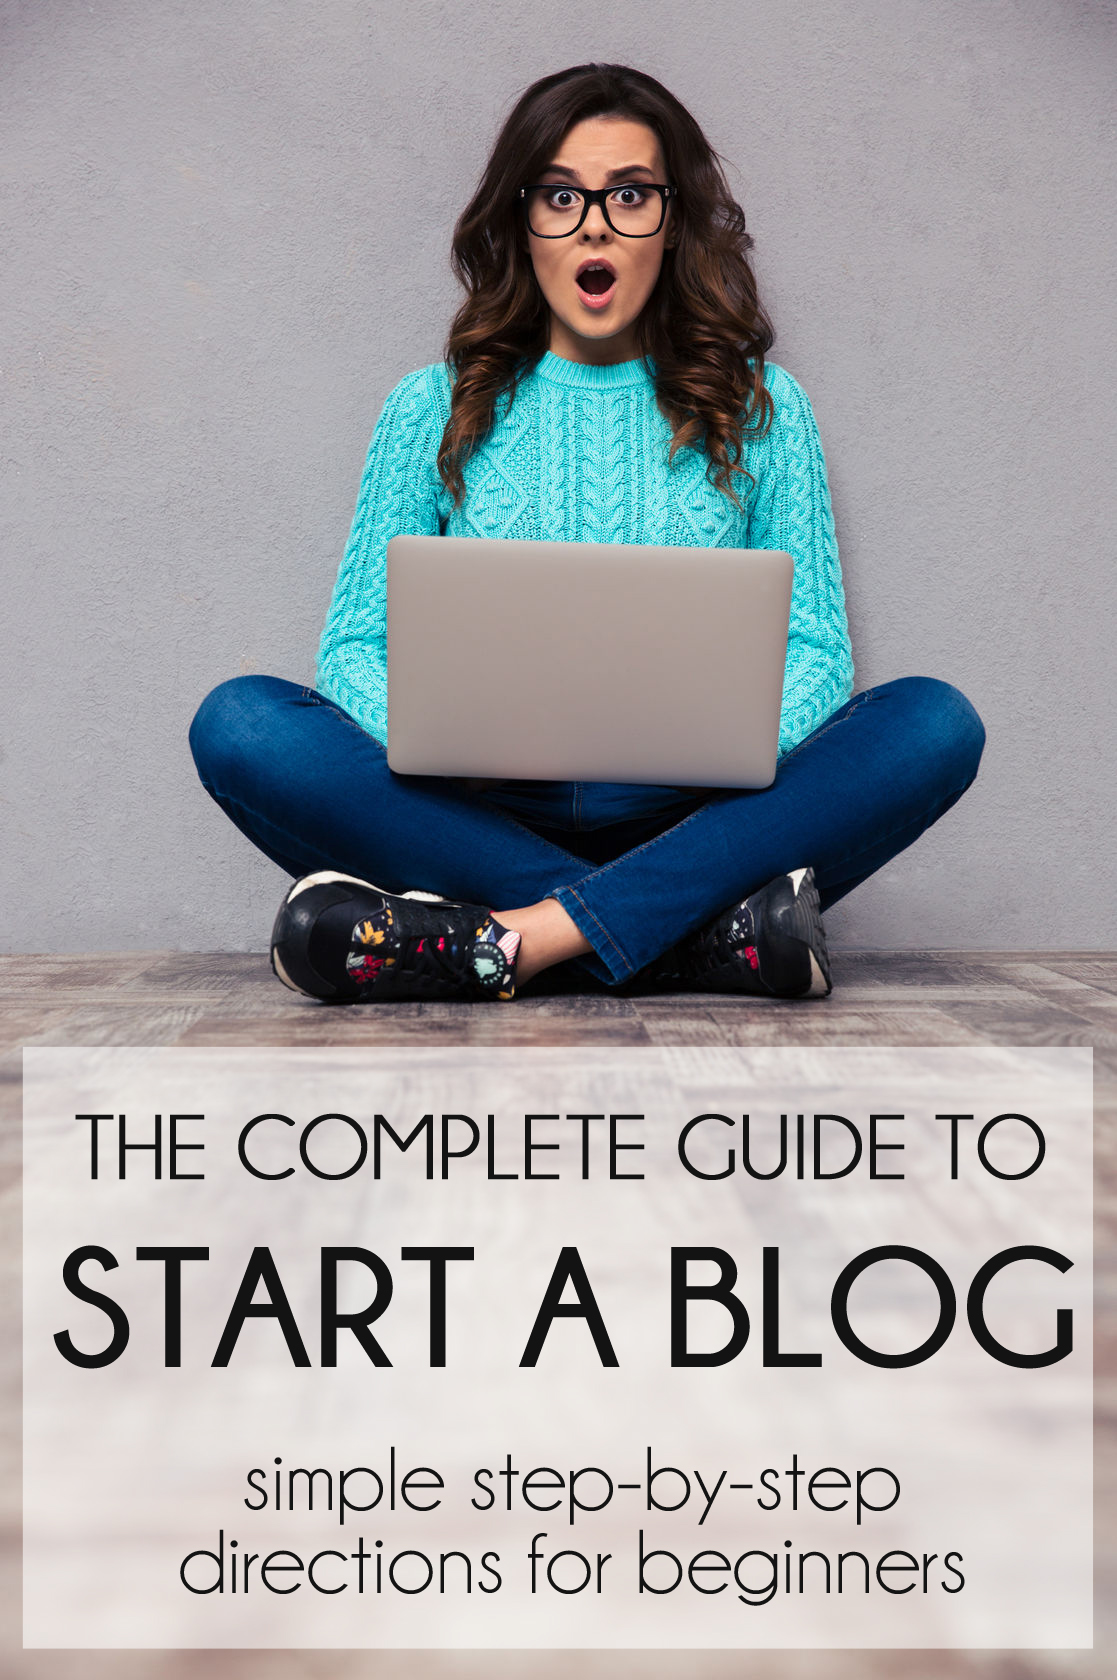 This lady makes over $250K a year blogging! Step by step process on how to start a blog on WordPress. Even includes installing a free theme. This is the best tutorial I've ever seen on how to start a blog!